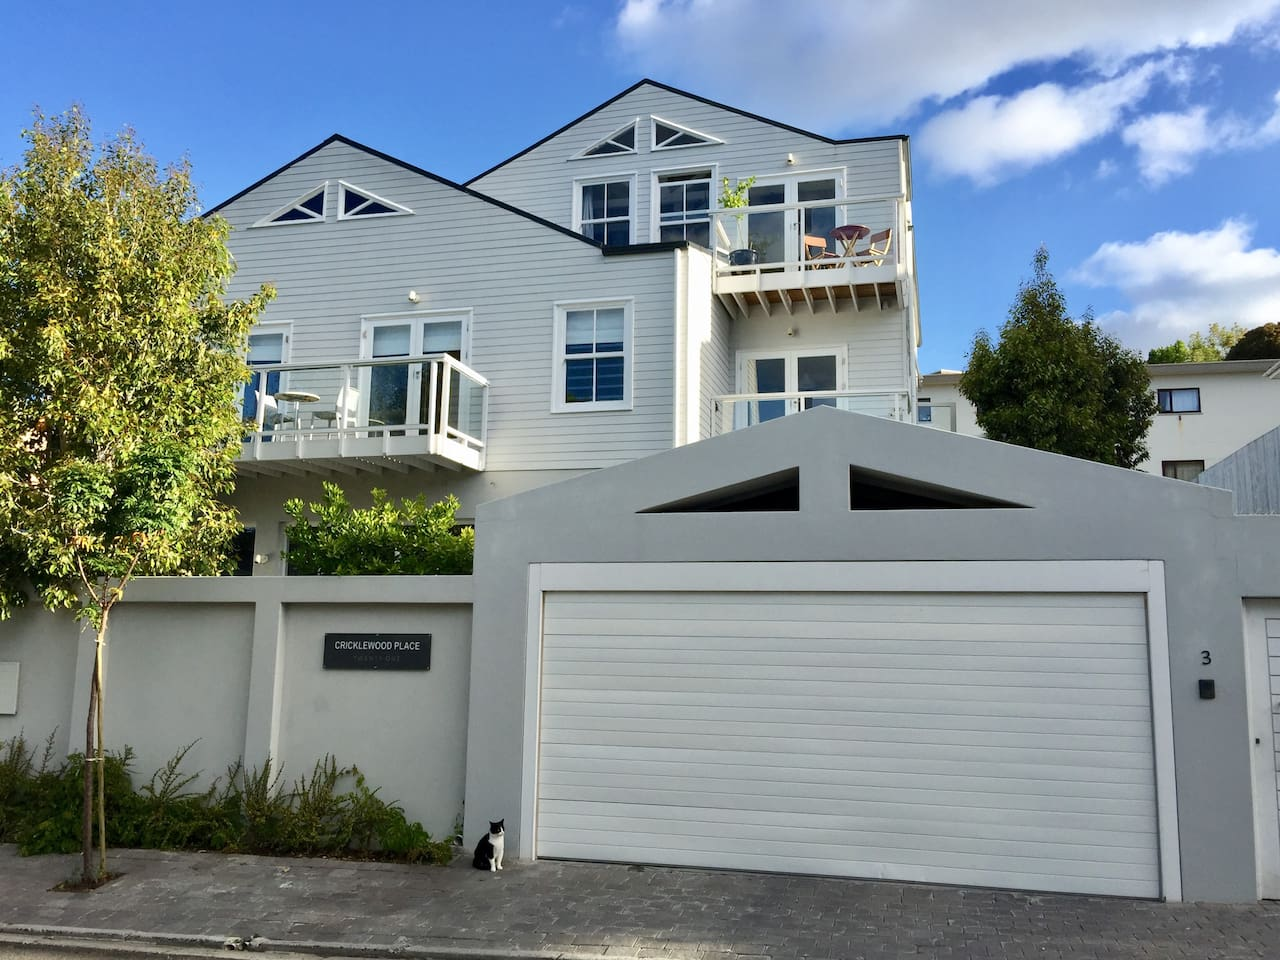 2 cricklewood place - luxury holiday home - townhouses for rent in